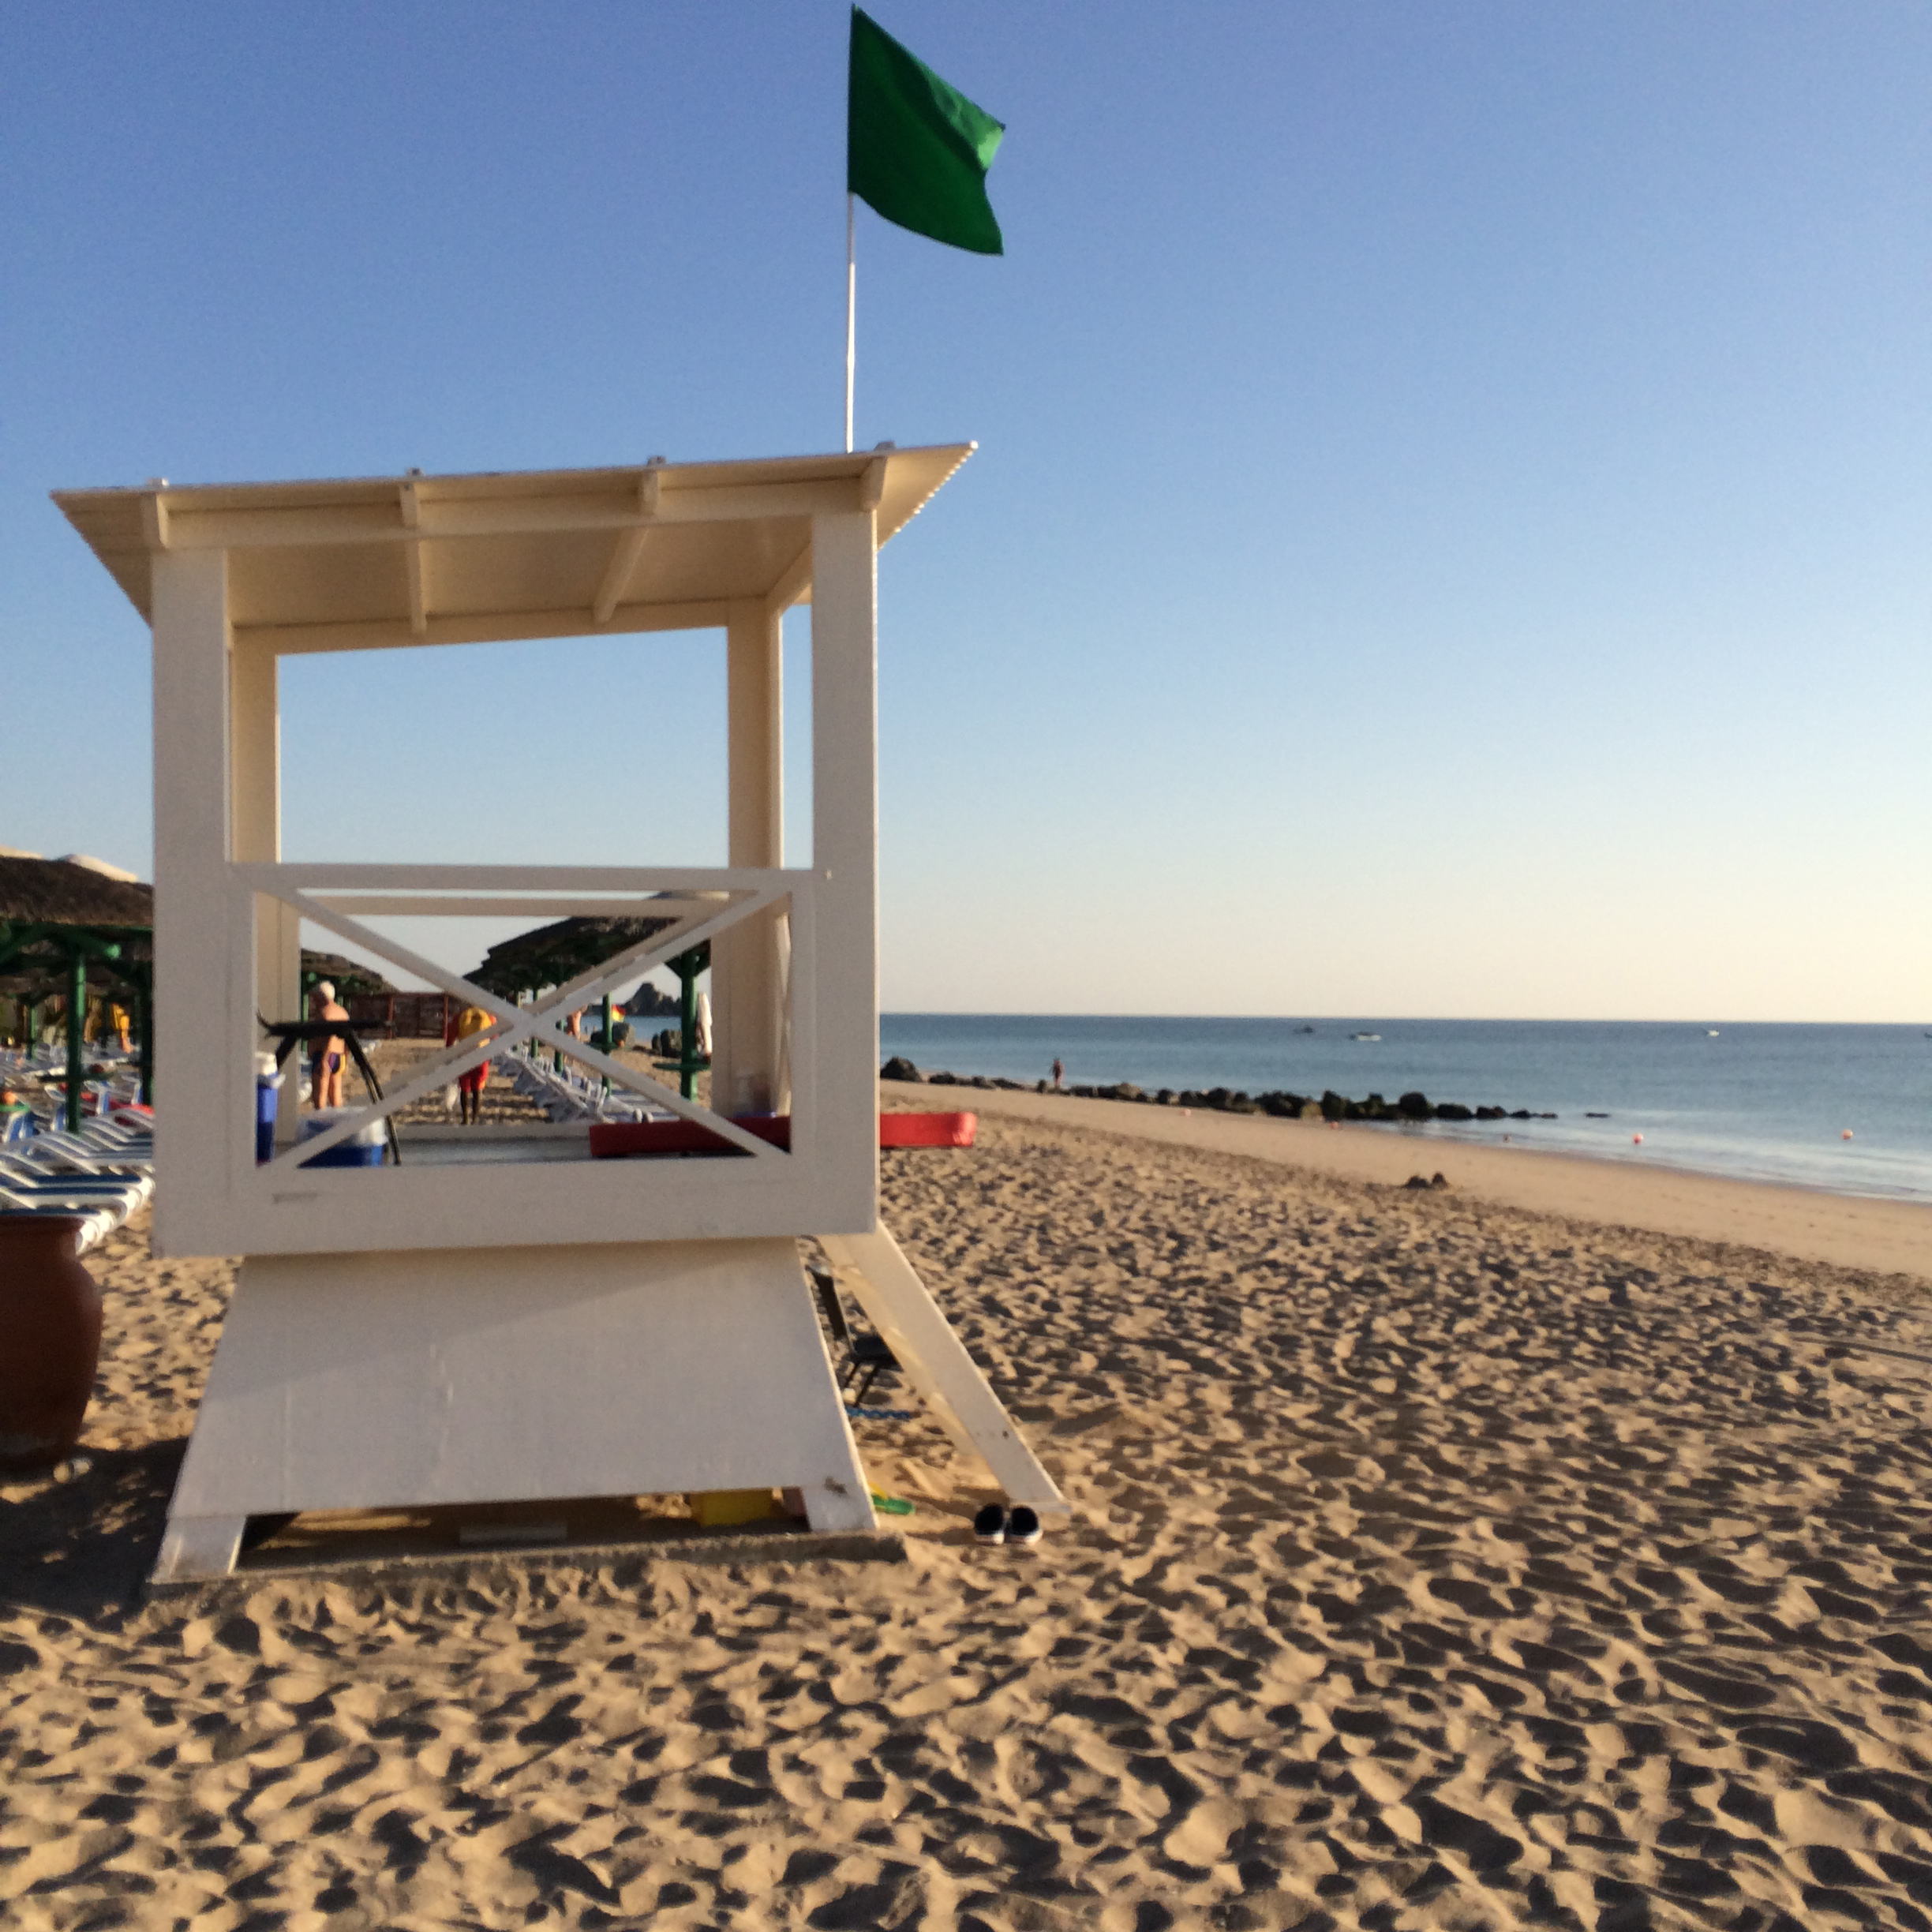 We wished we could have spent more time at this beach at the Rotana Resort in  Fujairah, United Arab Emirates